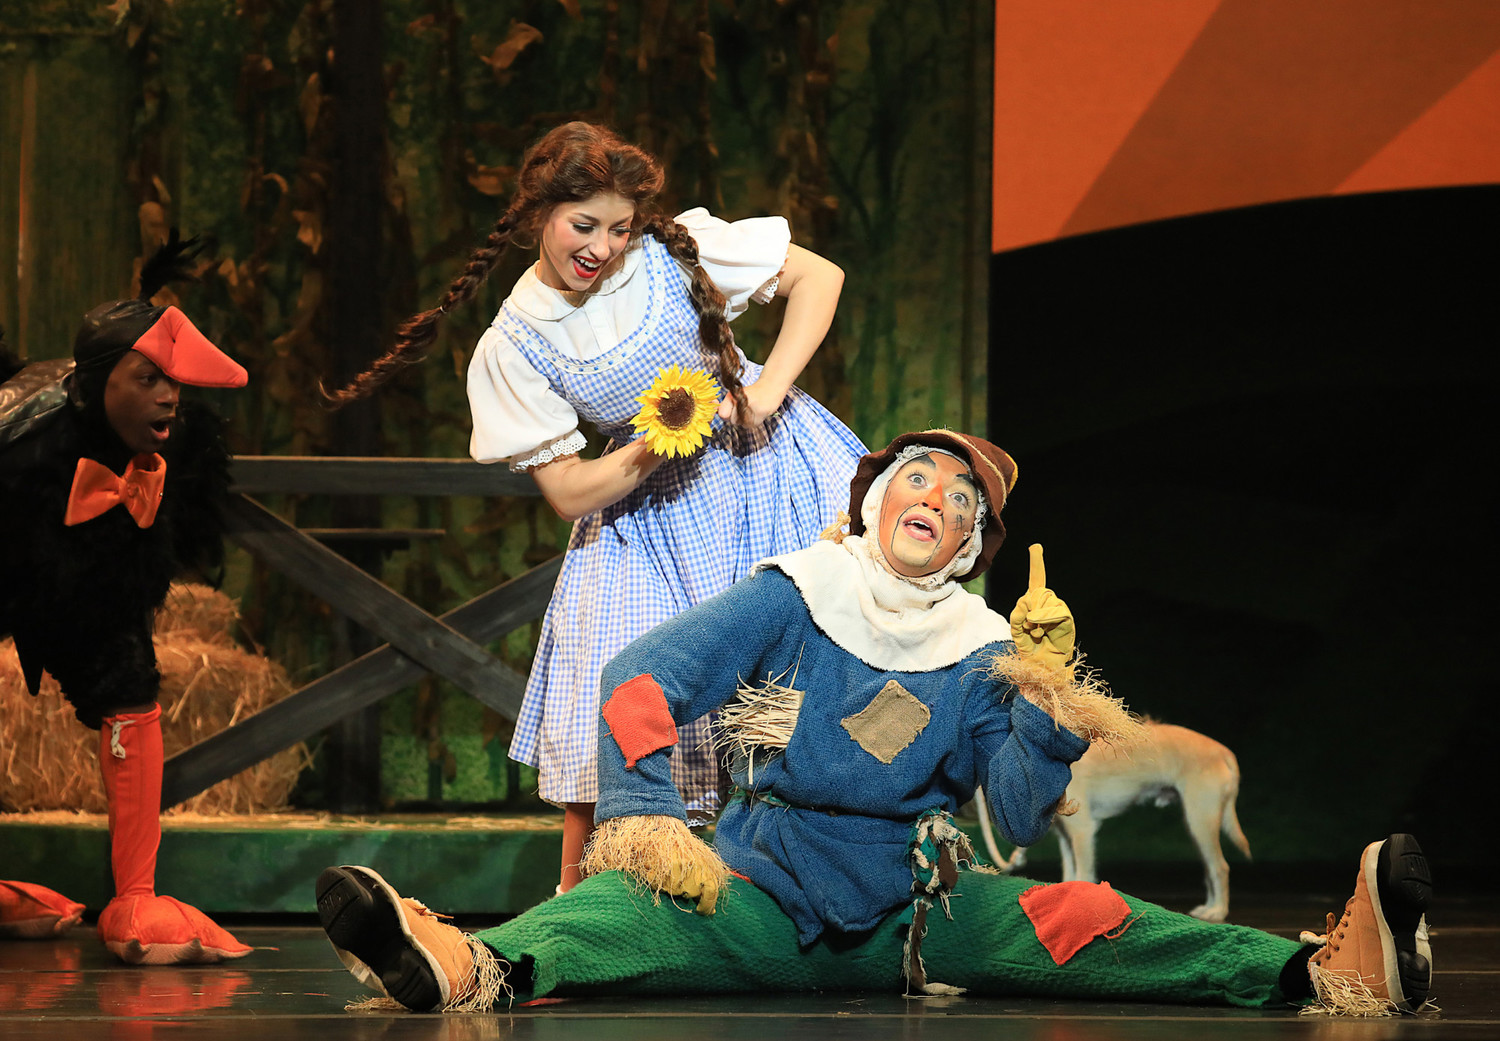 BWW Review: The WIZARD OF OZ at Tennessee Performing Arts Center Dazzles Audiences with Singing! and Dancing! and FUN! OH MY!